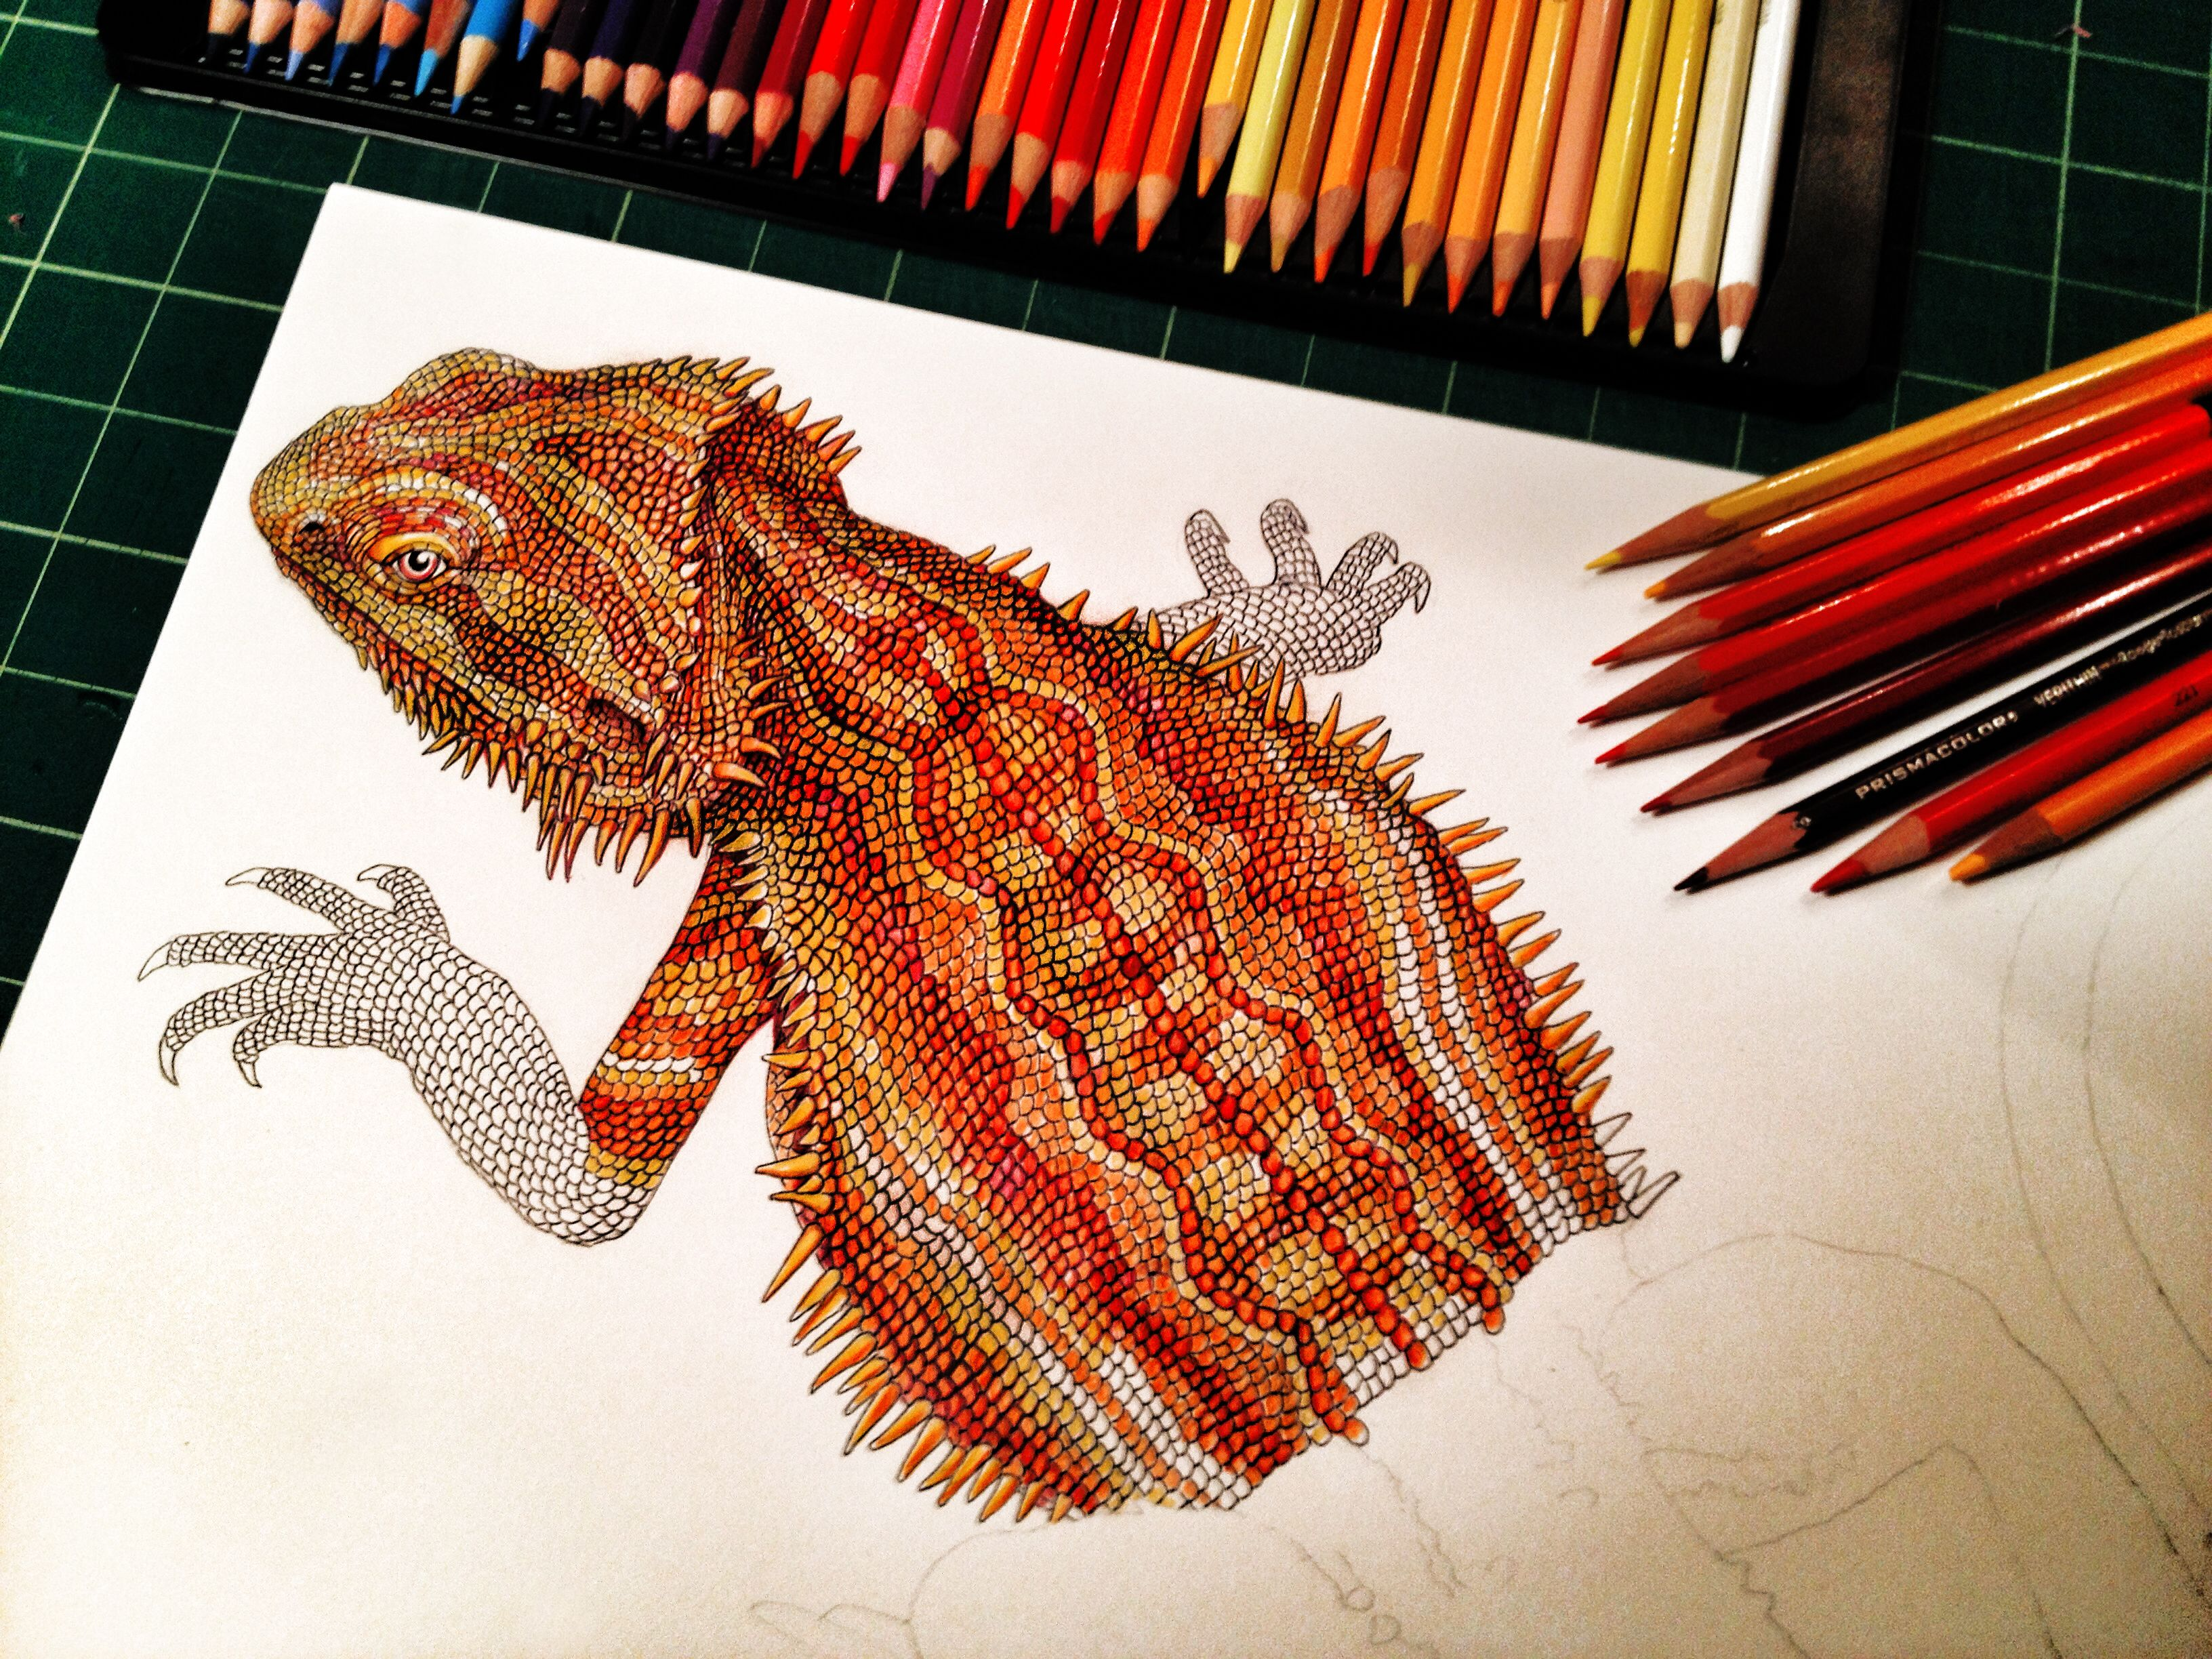 about half done with my pogona or bearded dragon prints of over